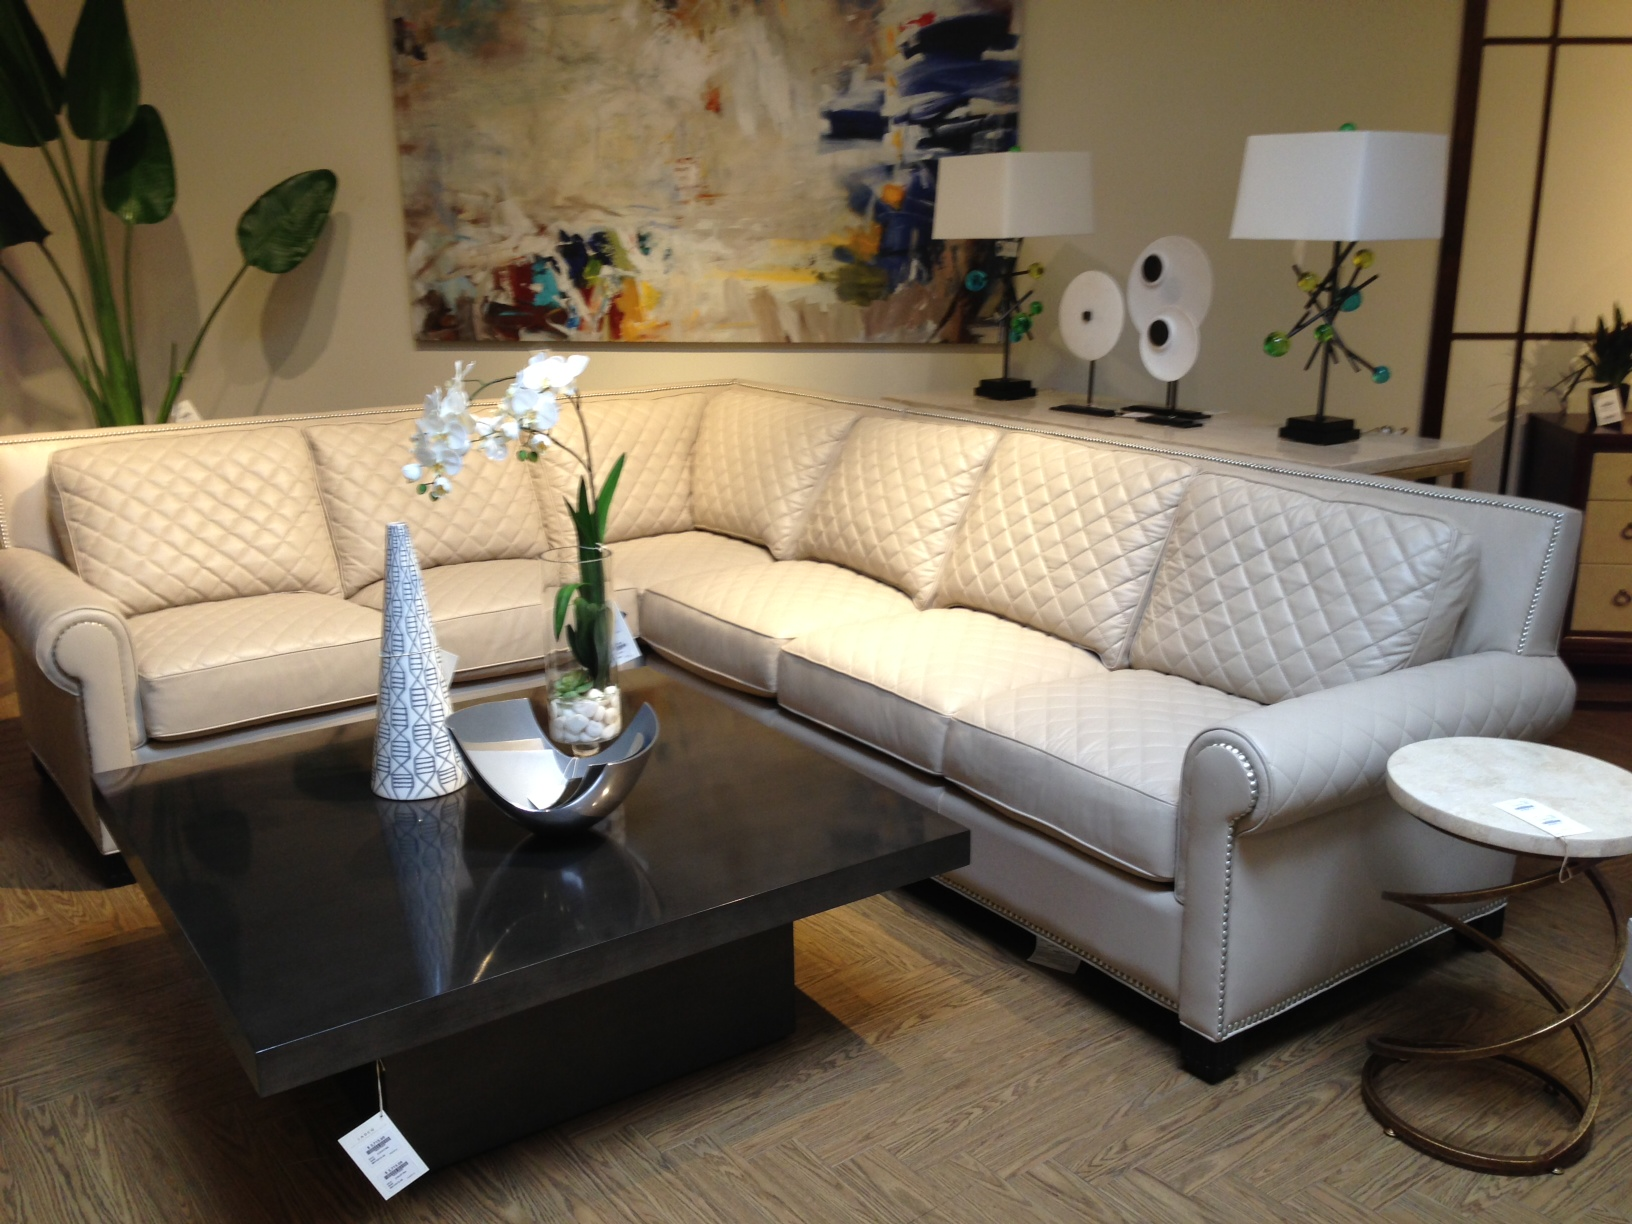 Can A Classy Living Room Be Designed Quickly? Watch Me Rush ...